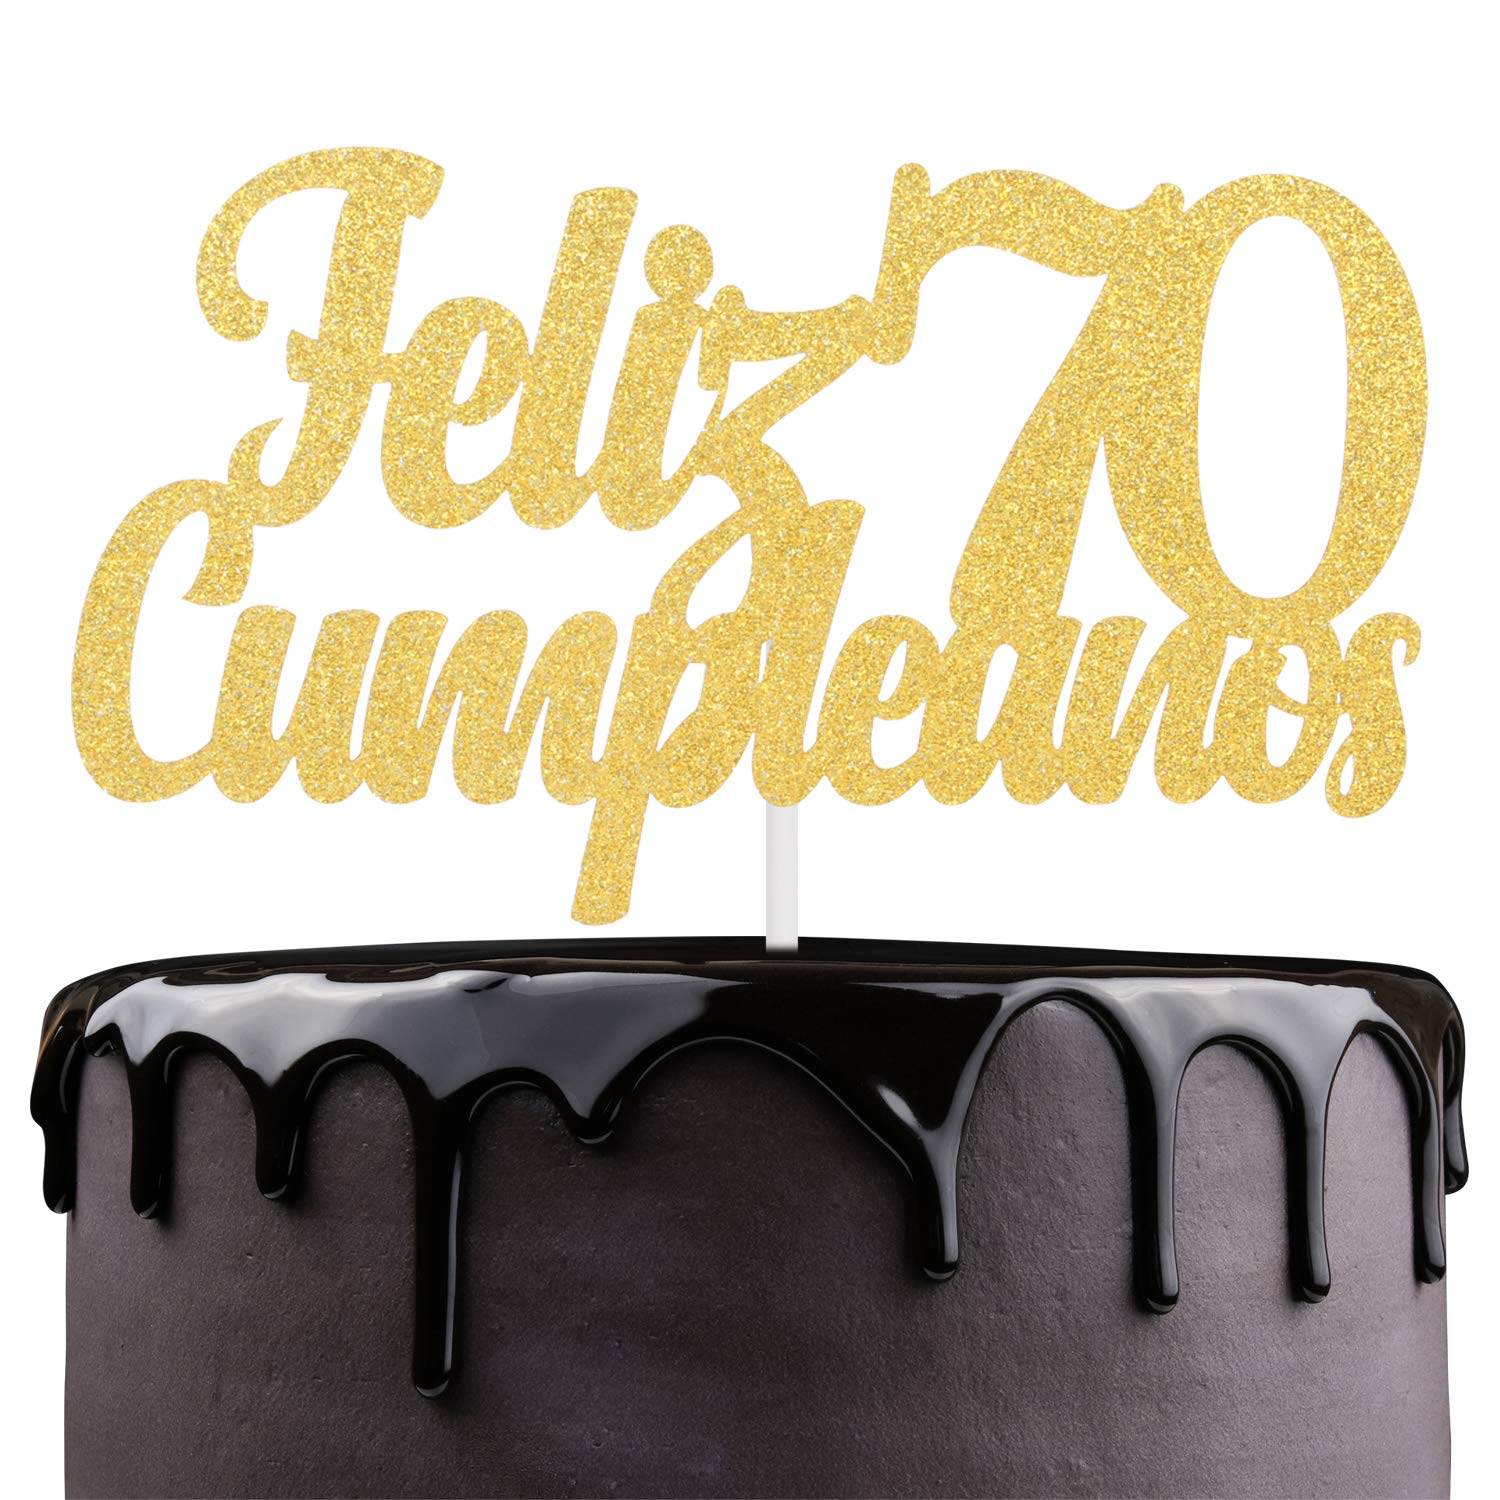 Feliz Cumpleaños 70th Birthday Cake Topper - Gold Glitter Spanish Seventy Years Old Adorno De Cake - Slaying Dirty 70 - Man Woman Septuagésimo Años ...